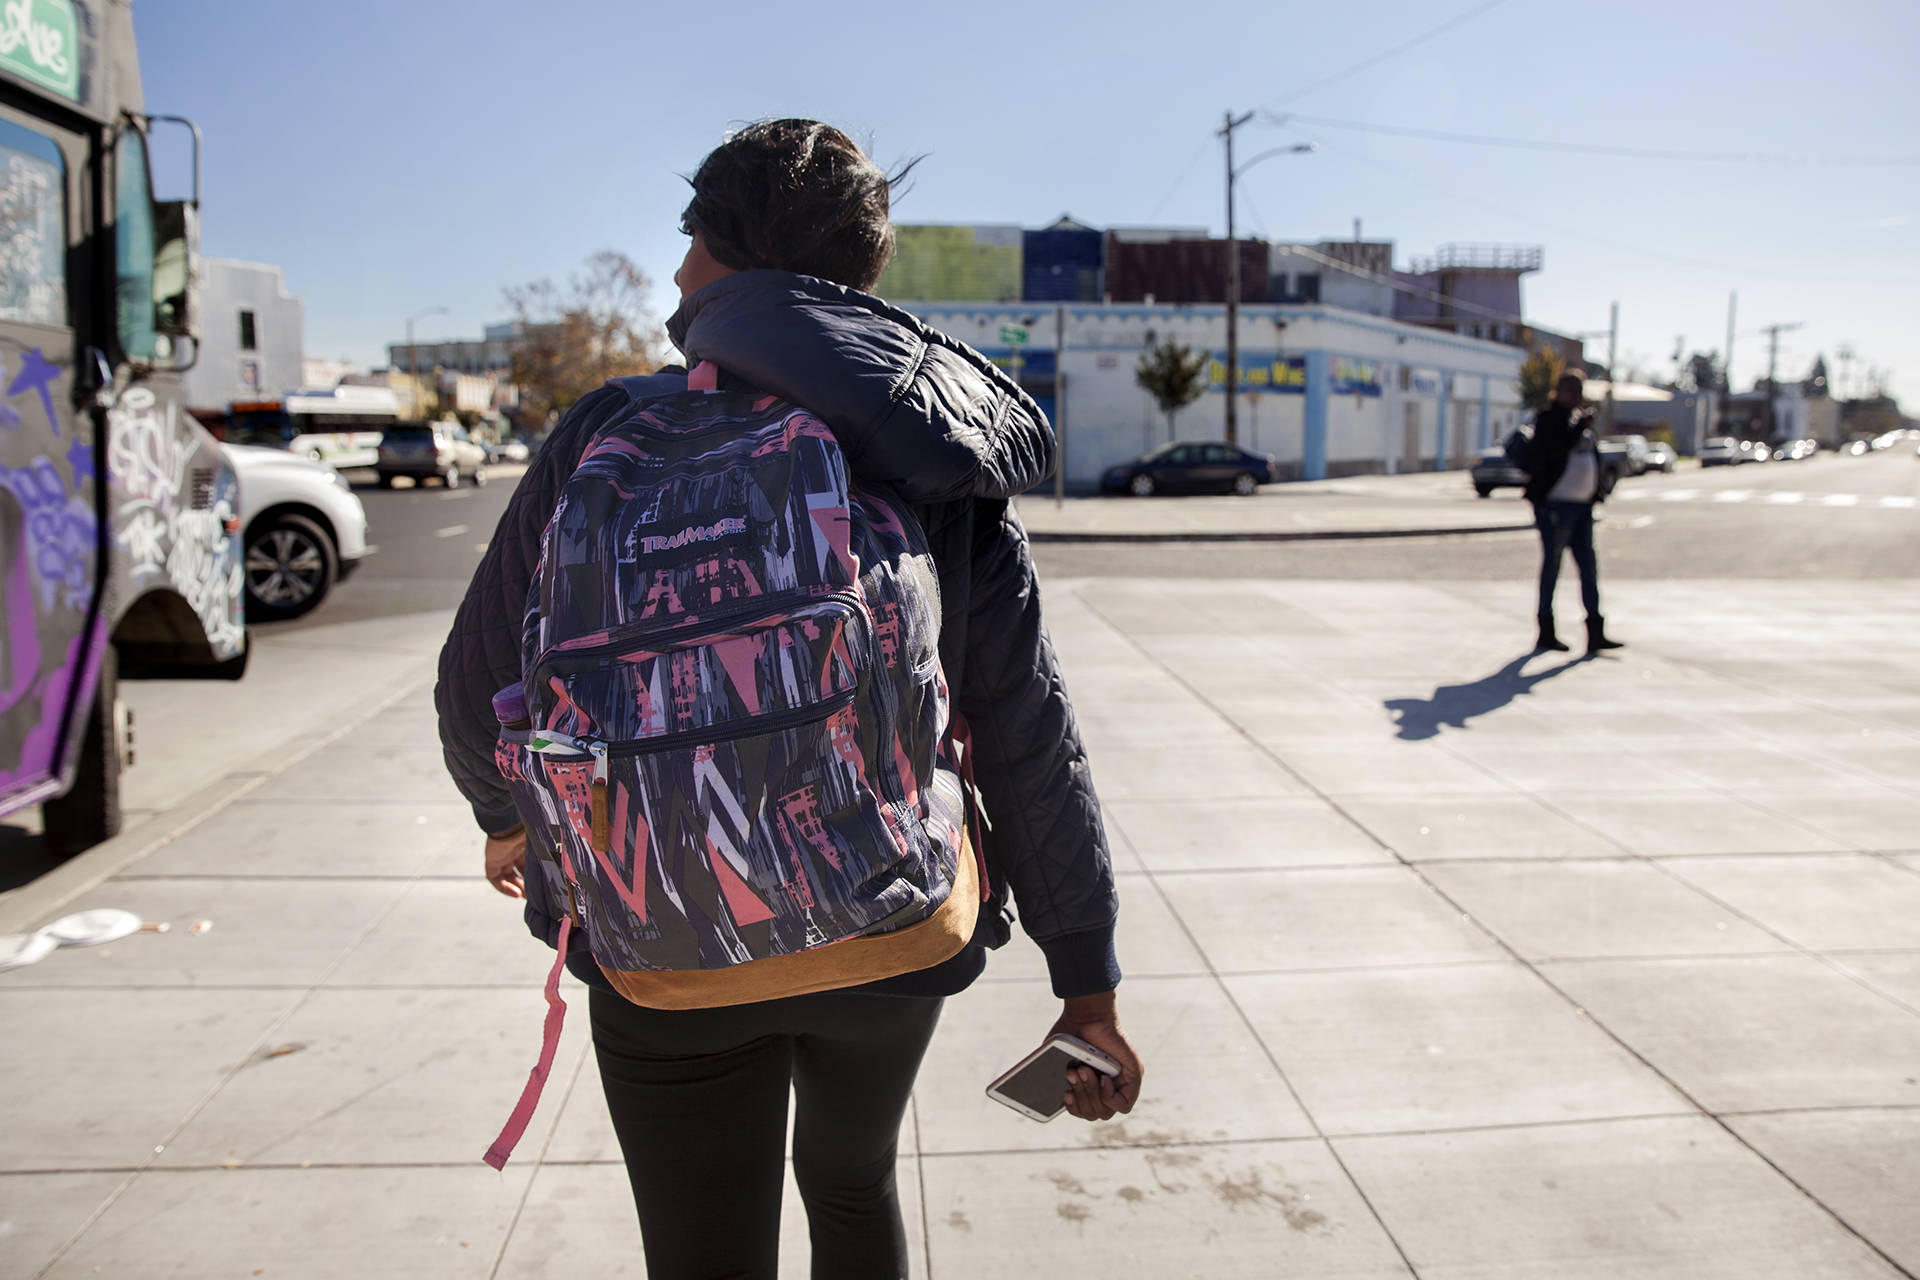 Brittany Jones, a student at Laney College, makes her way from class to her storage unit in West Oakland. Jones is currently homeless and spends up to three hours a day at her storage unit organizing her belongings, doing homework or relaxing. Brittany Hosea-Small/KQED